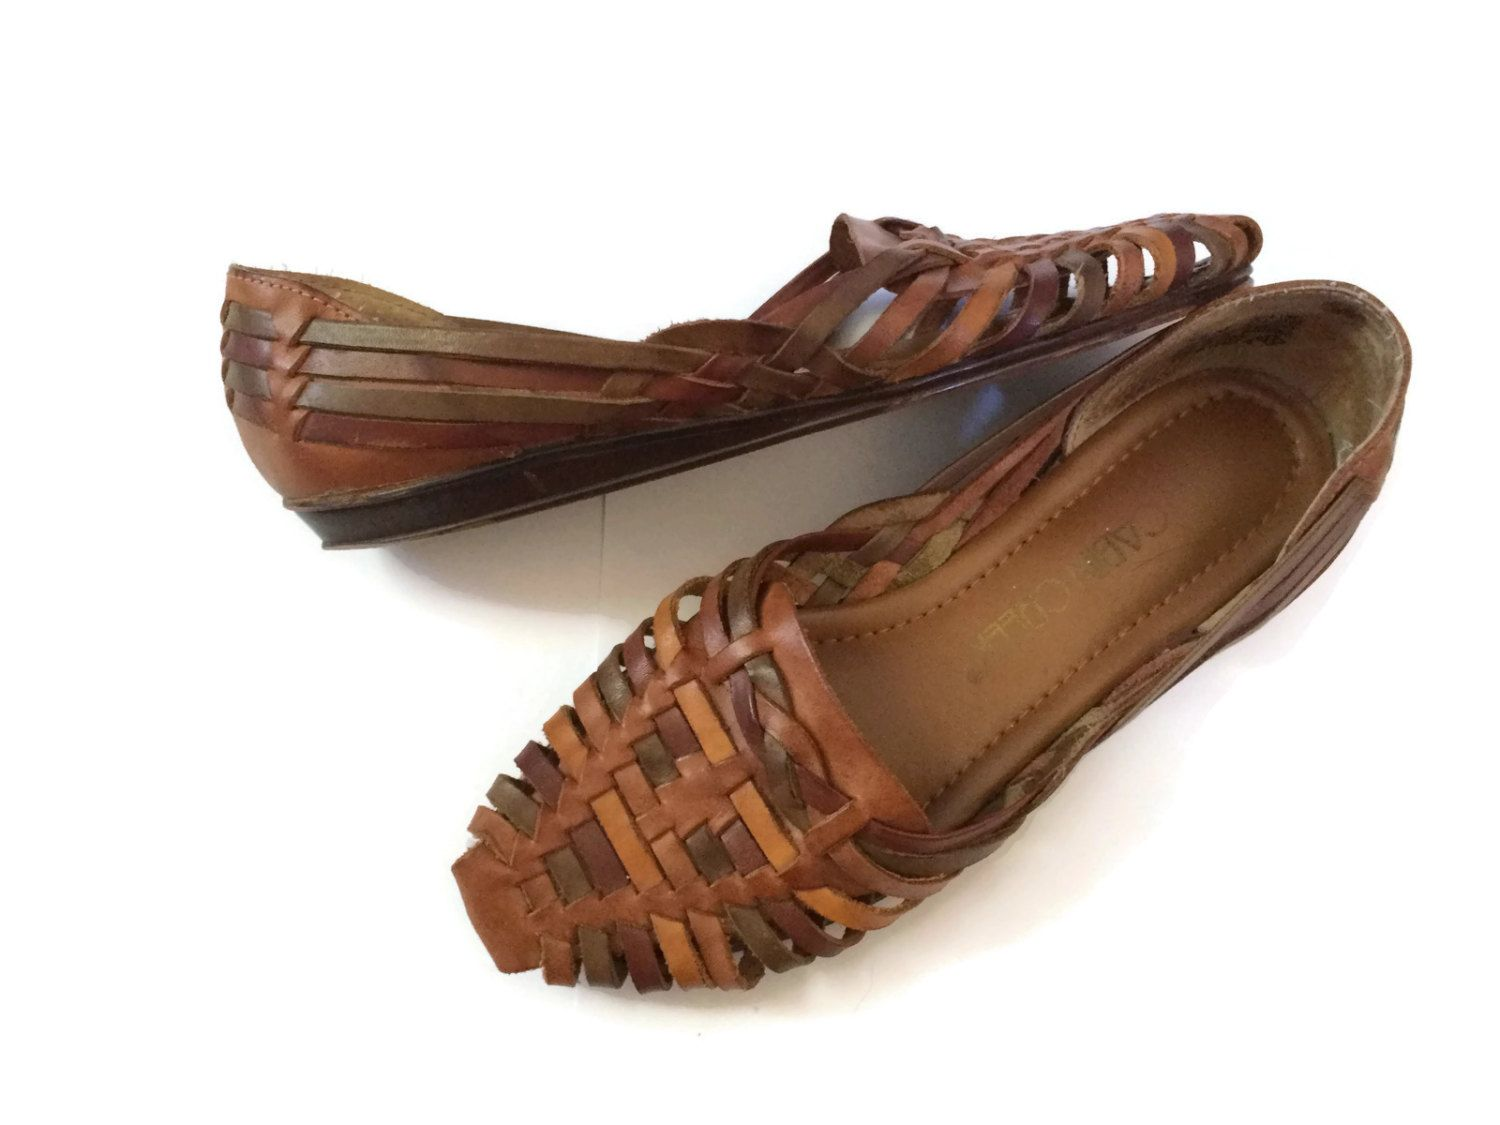 0510a8daddd1 Huarache Sandals Woven Leather Size 6.5 6 1 2 90s Flats Summer Shoes Brown  Braided Mini Wedge Heel Boho Hippie Hipster by GoodLuxeVintage on Etsy